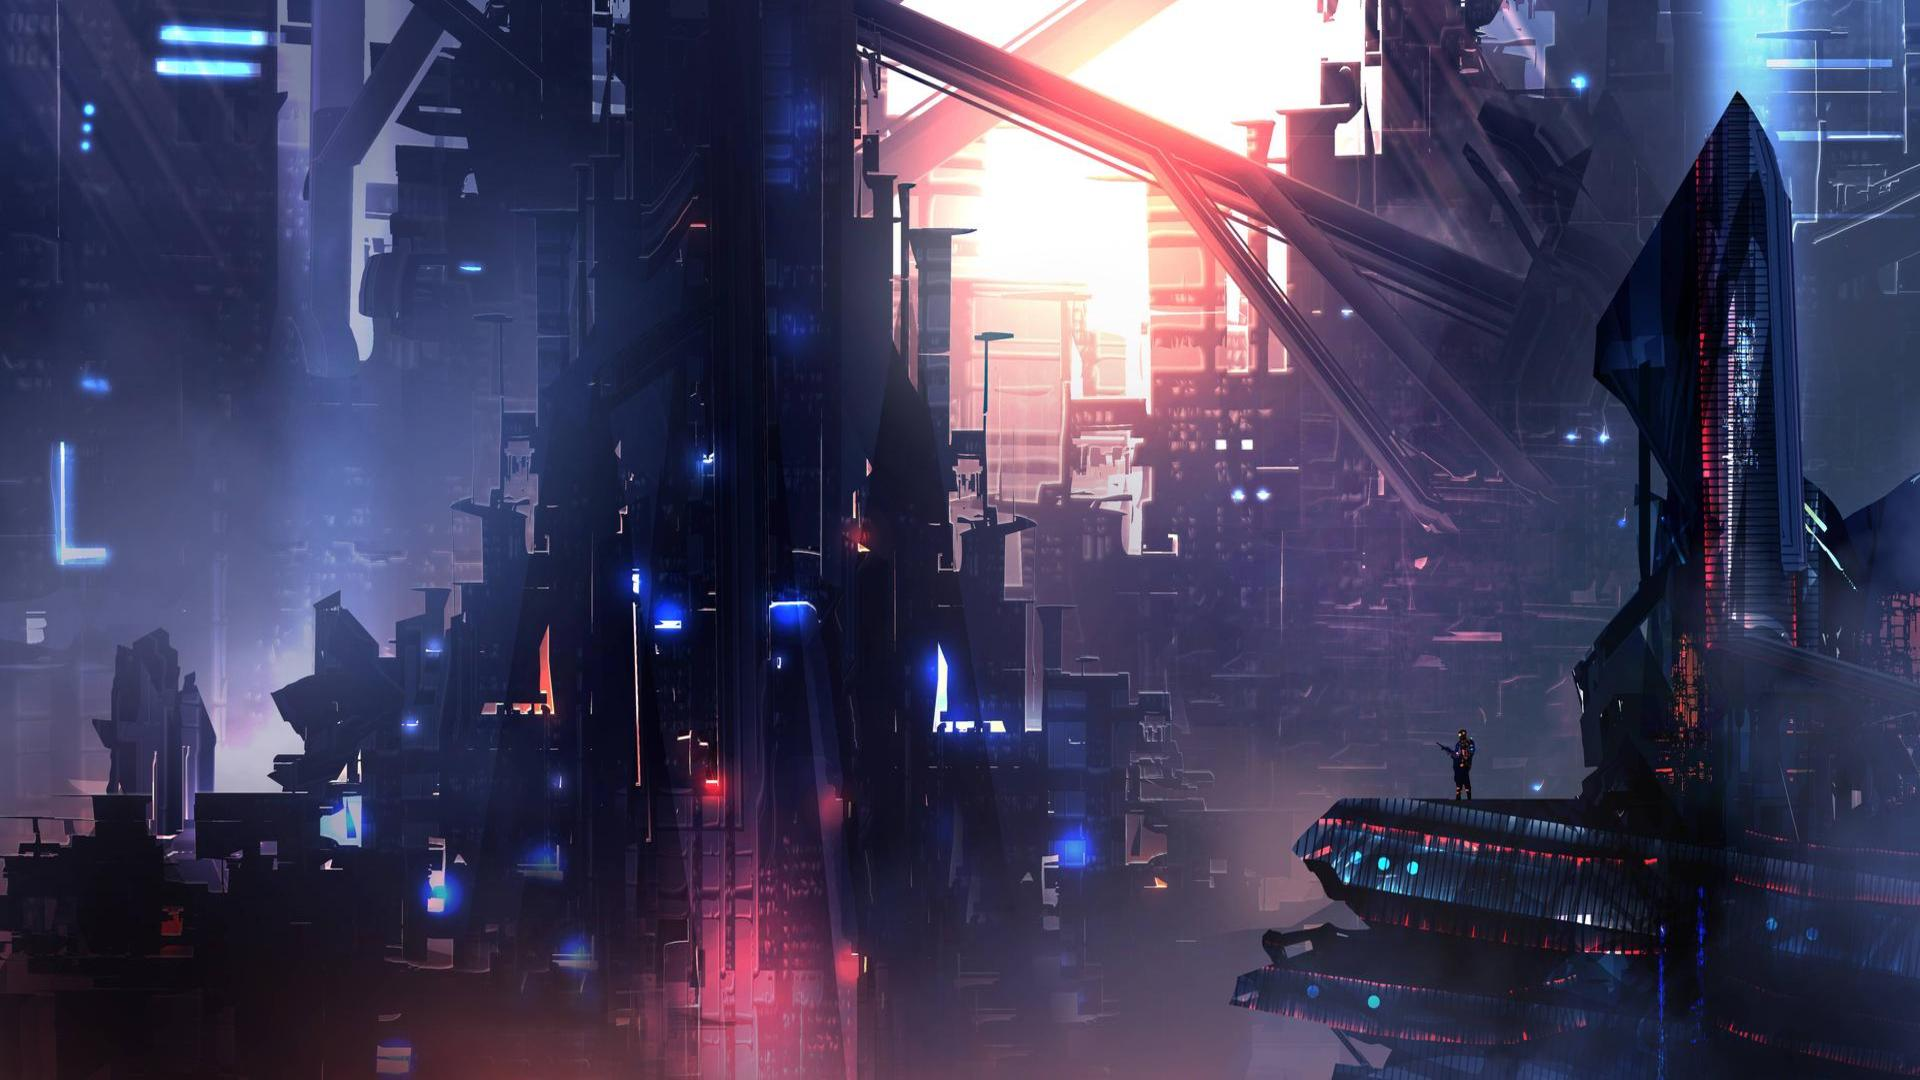 Cyber City Wallpapers - Top Free Cyber City Backgrounds ...